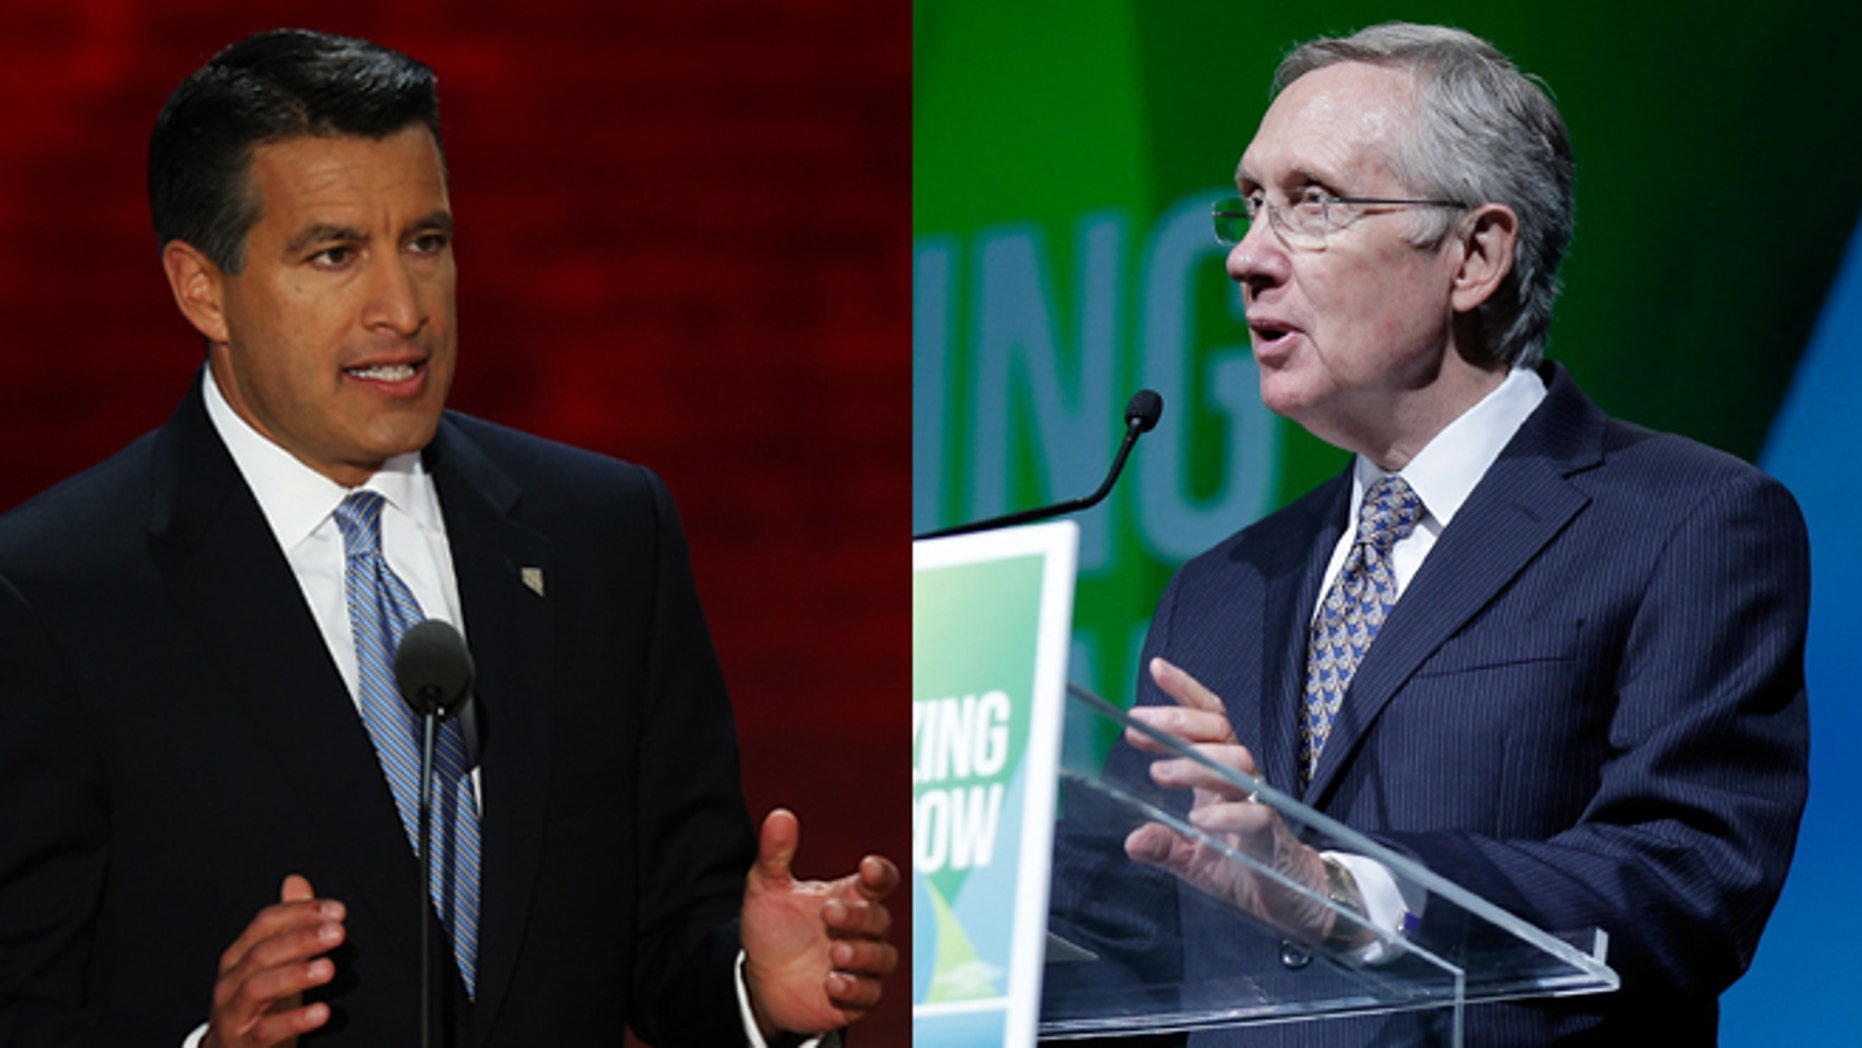 Nevada Gov. Brian Sandoval (left) and U.S. Sen. Harry Reid (right). (Photos: Getty Images)